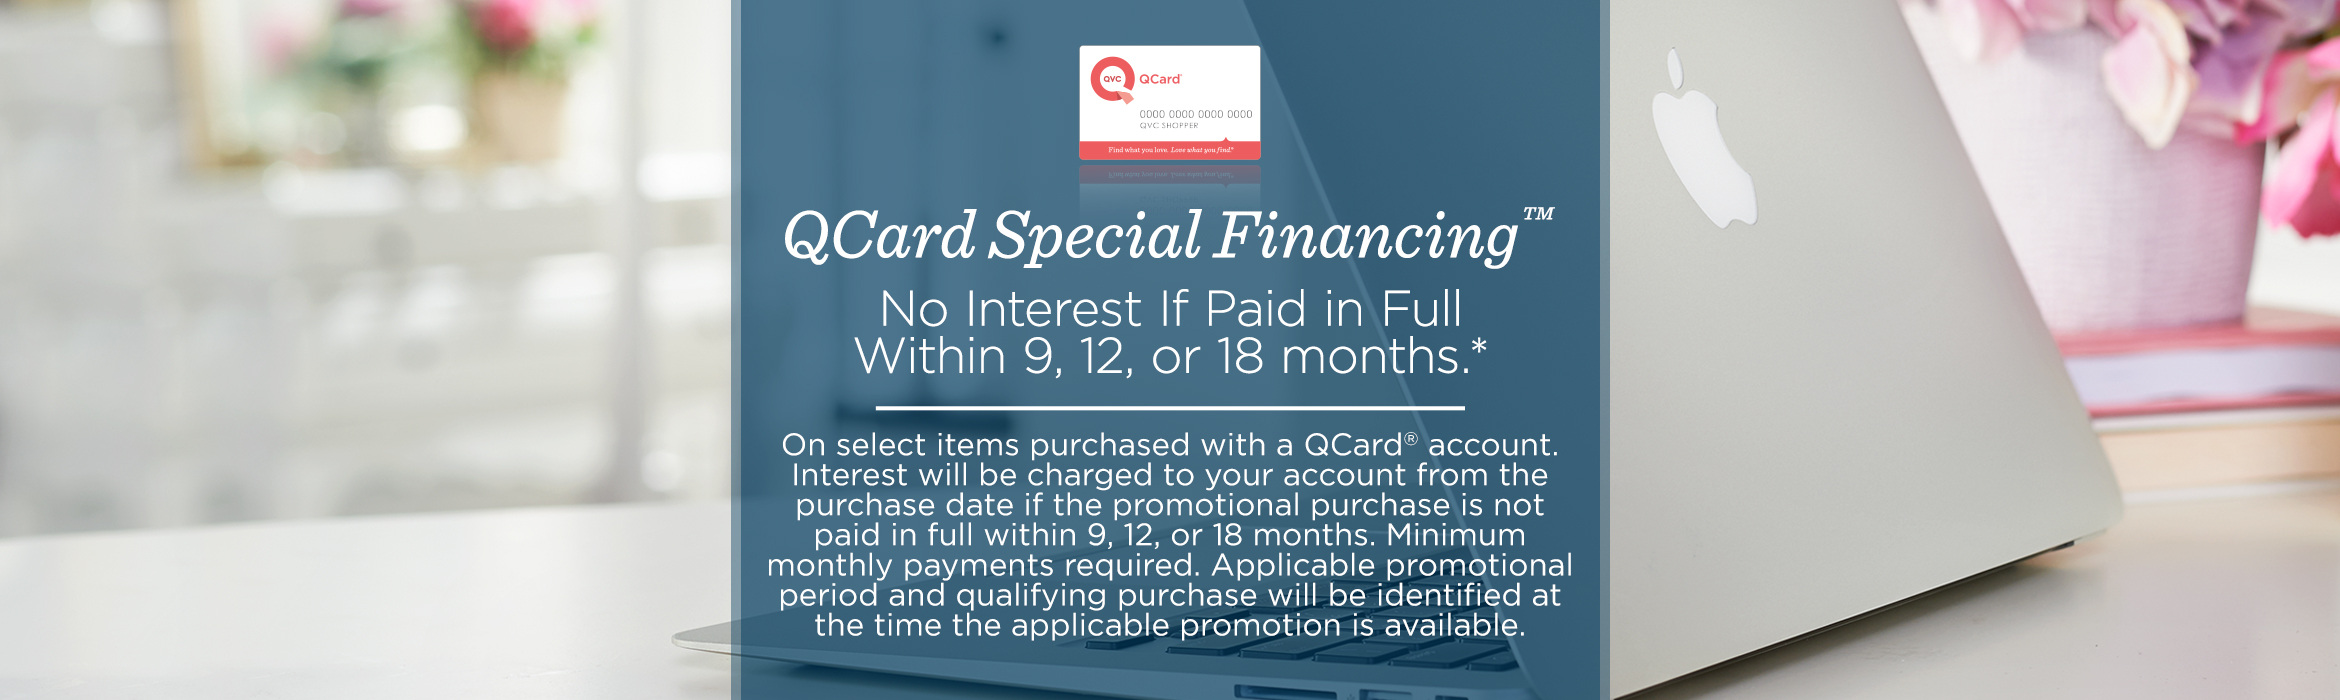 QCard Special Financing™    No interest if paid in full within 9, 12, or 18 months.* Smaller Font [Please move under the subhead]: On select items purchased with a QCard® account. Interest will be charged to your account from the purchase date if the promotional purchase is not paid in full within 9, 12, or 18 months. Minimum monthly payments required. Applicable promotional period and qualifying purchase will be identified at the time the applicable promotion is available.